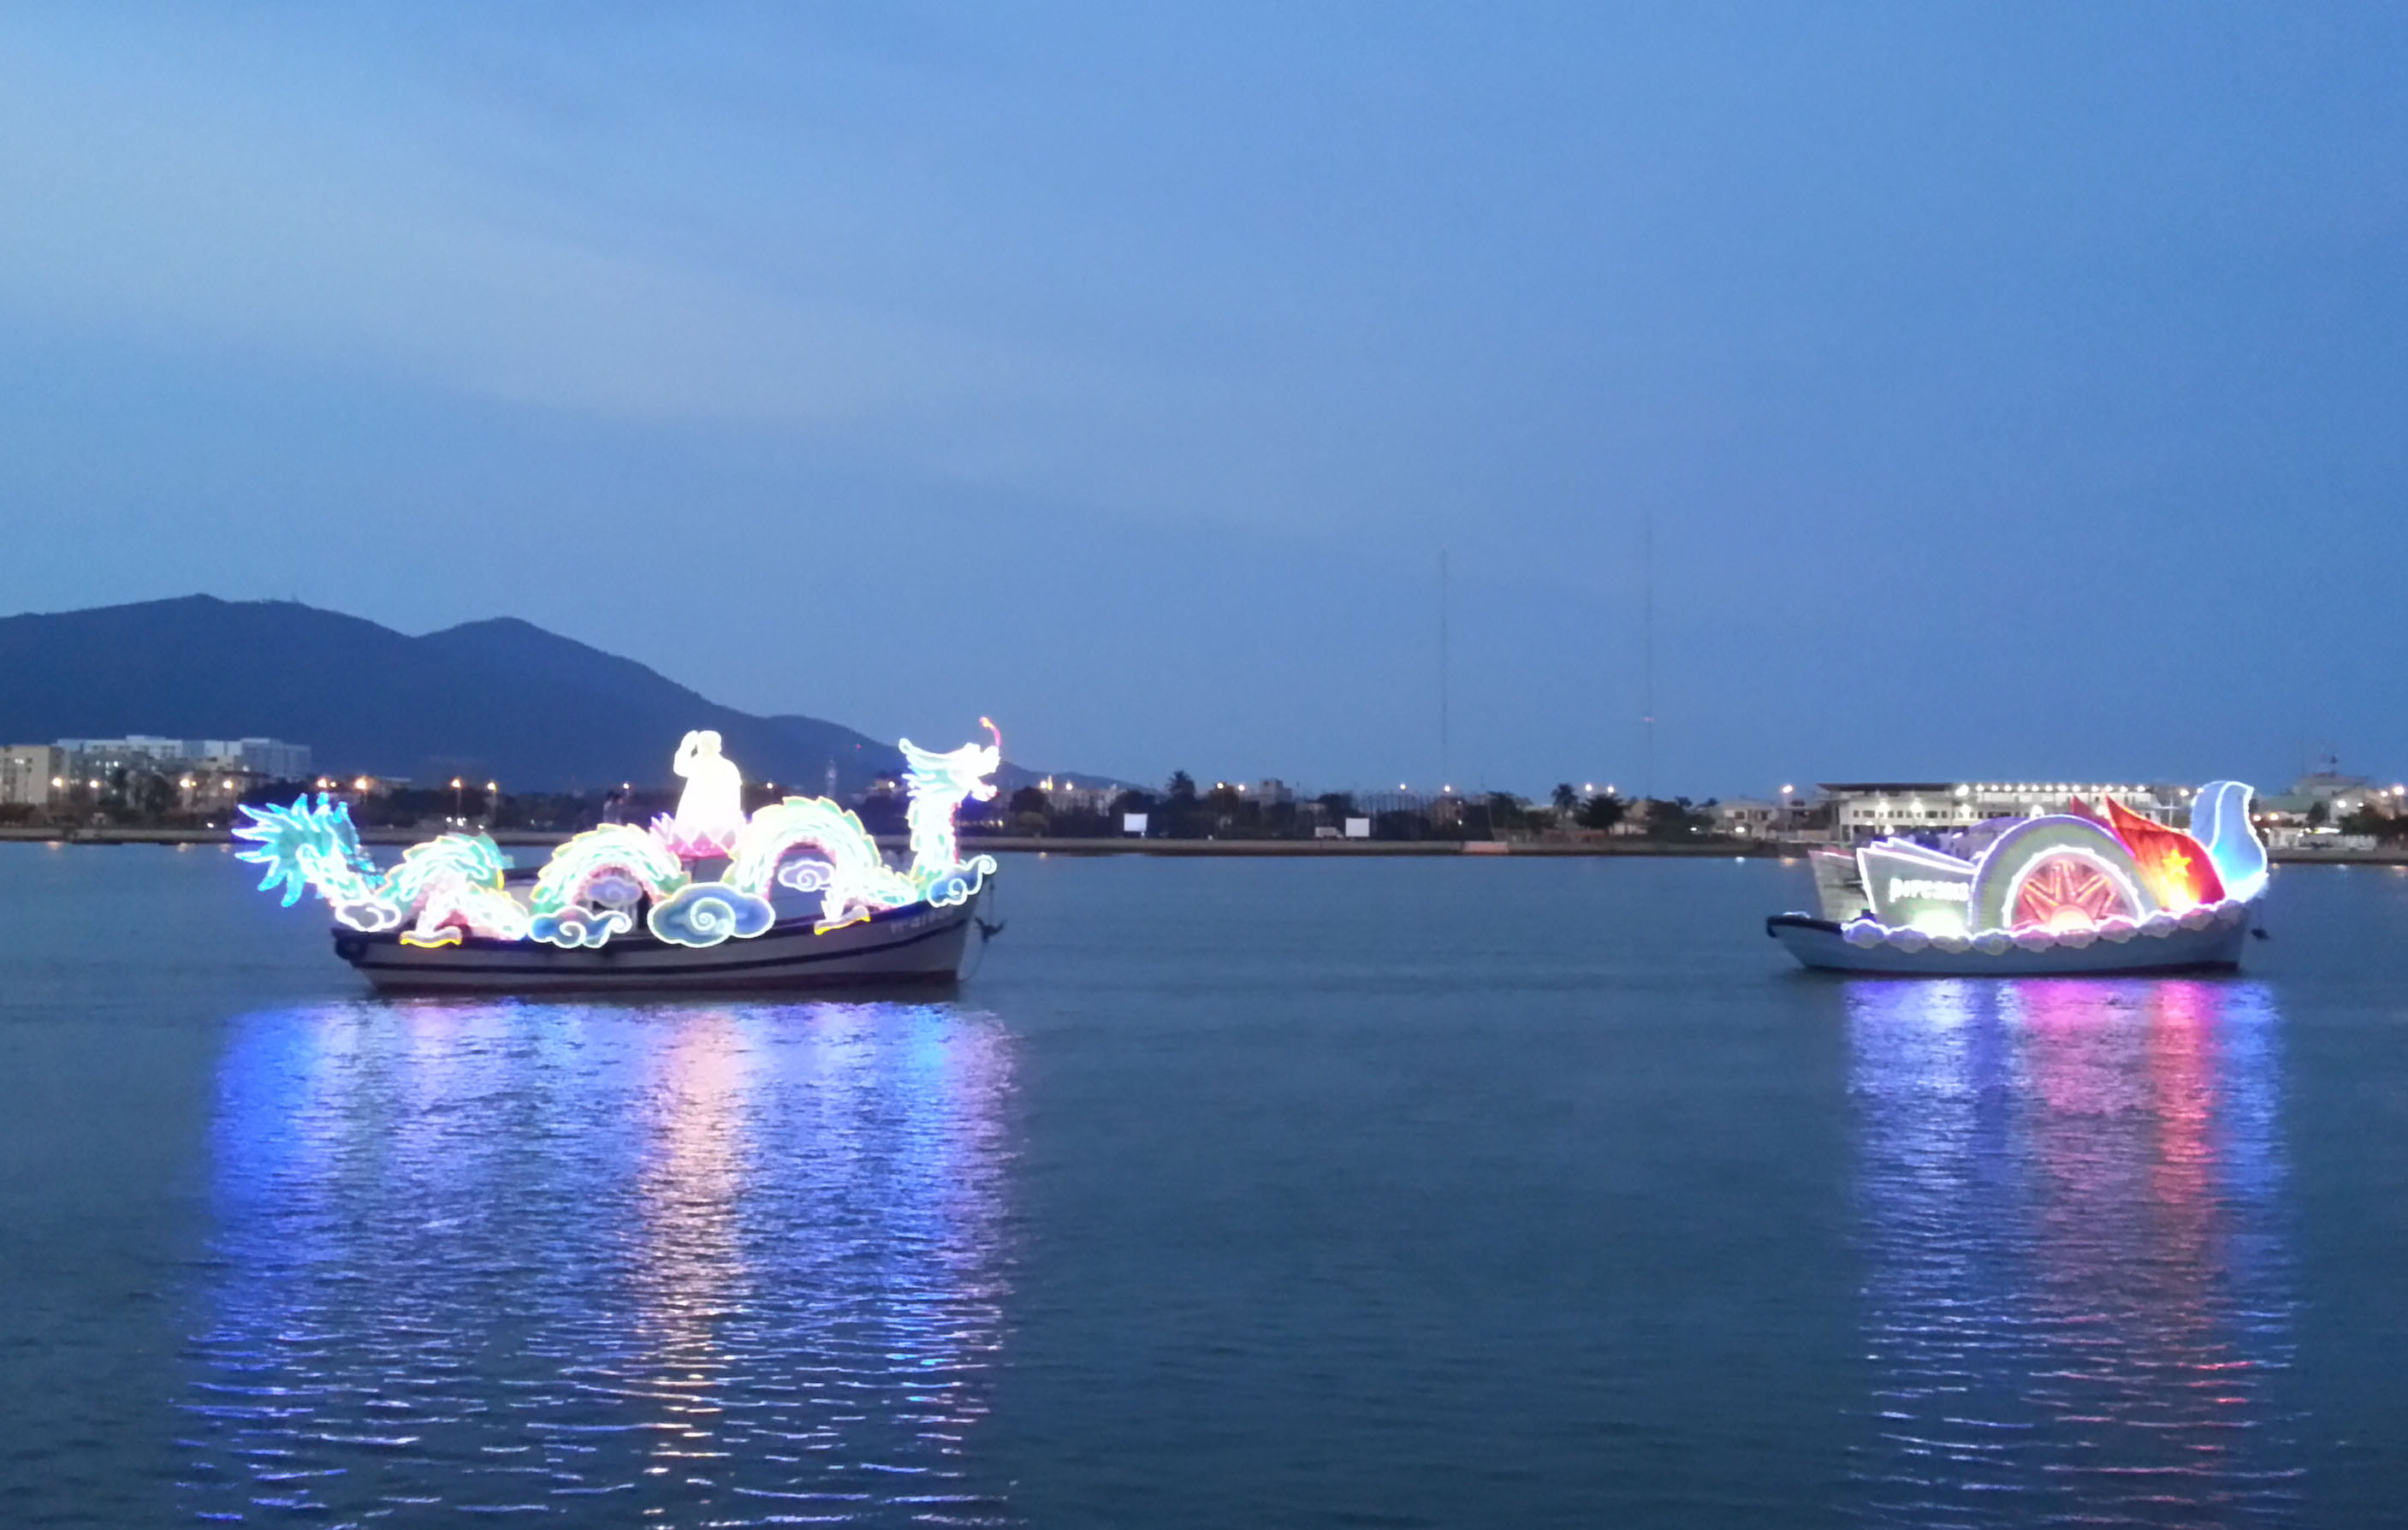 Da Nang to develop river tourism to diversify its city offerings